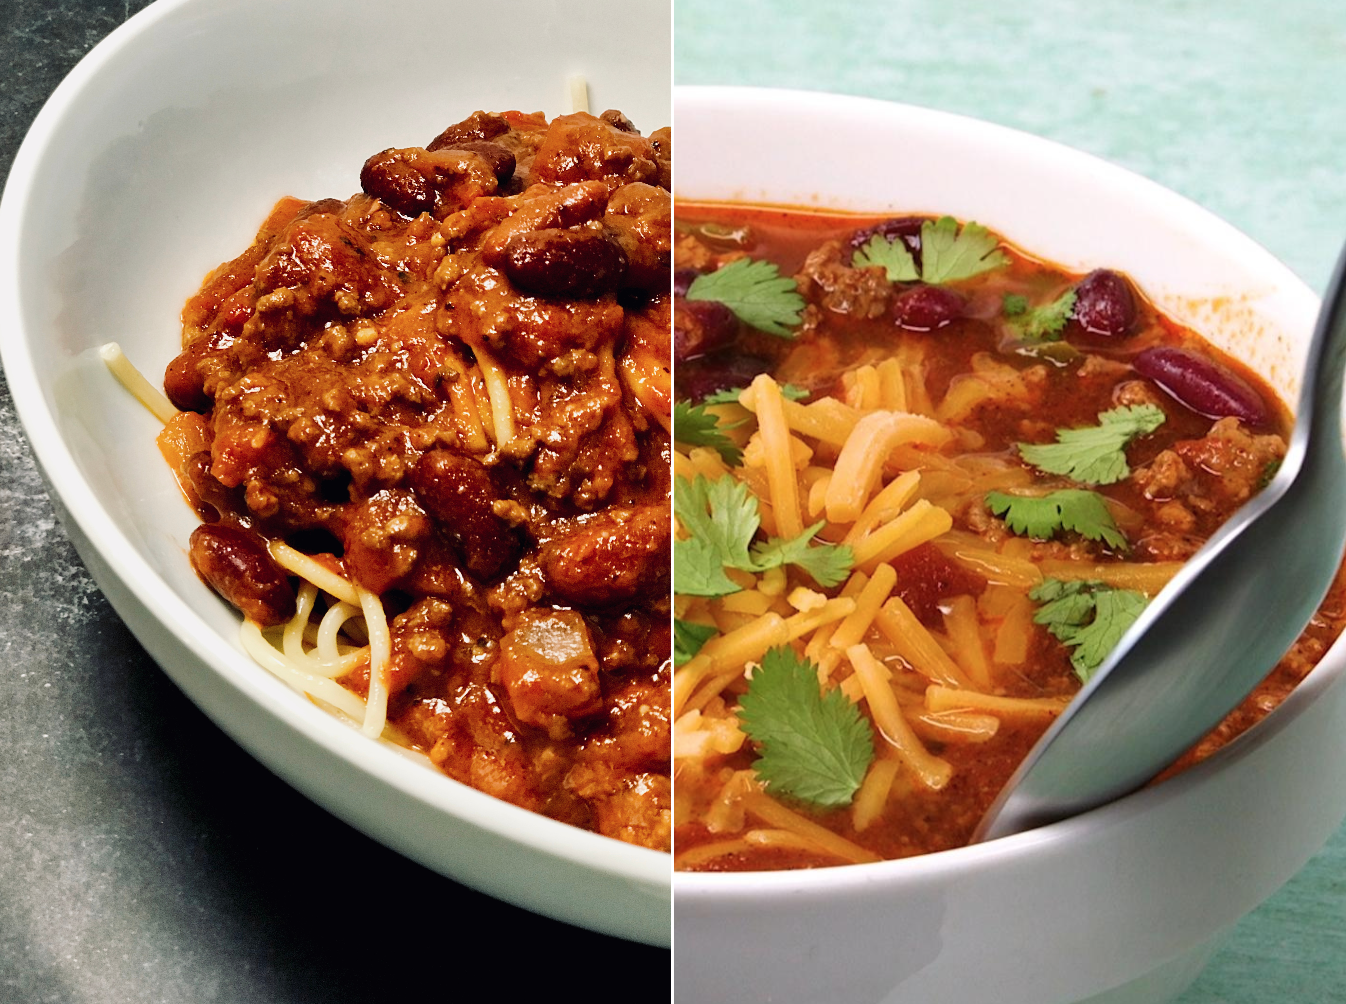 Cincinnati Chili vs Regular Chili